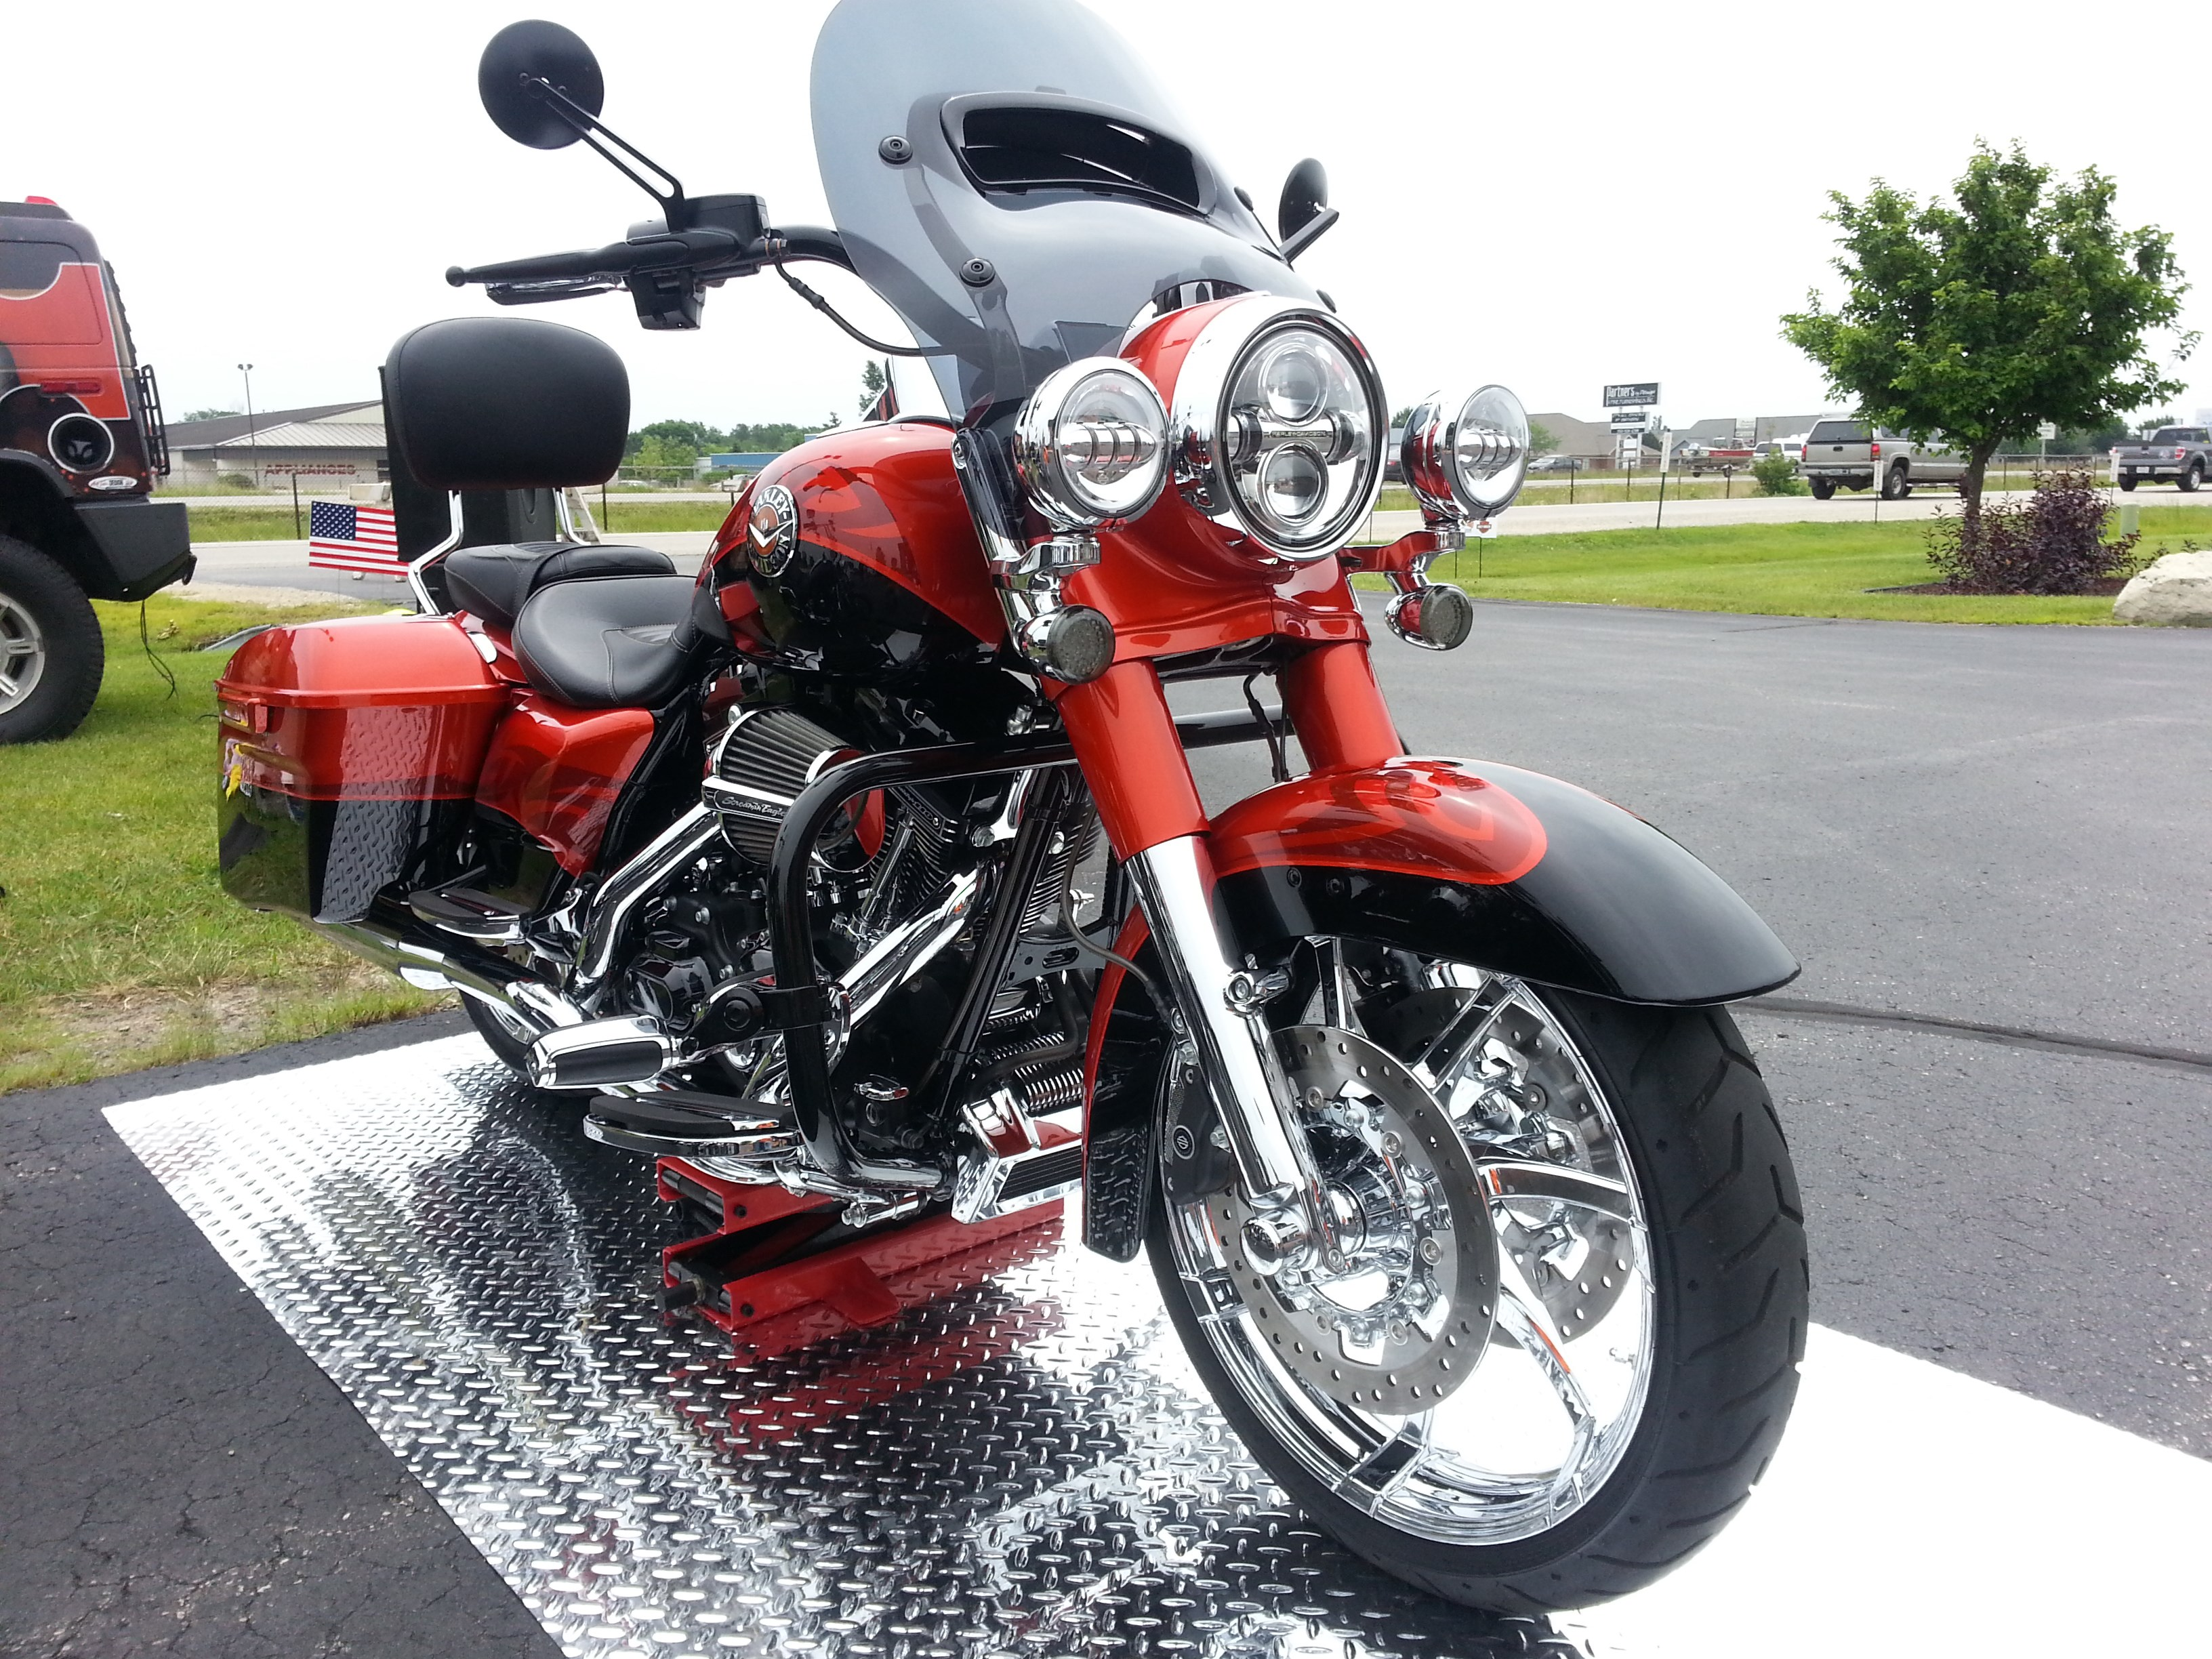 2014 Harley Davidson 174 Flhrse5 Cvo Road King 174 Tribal